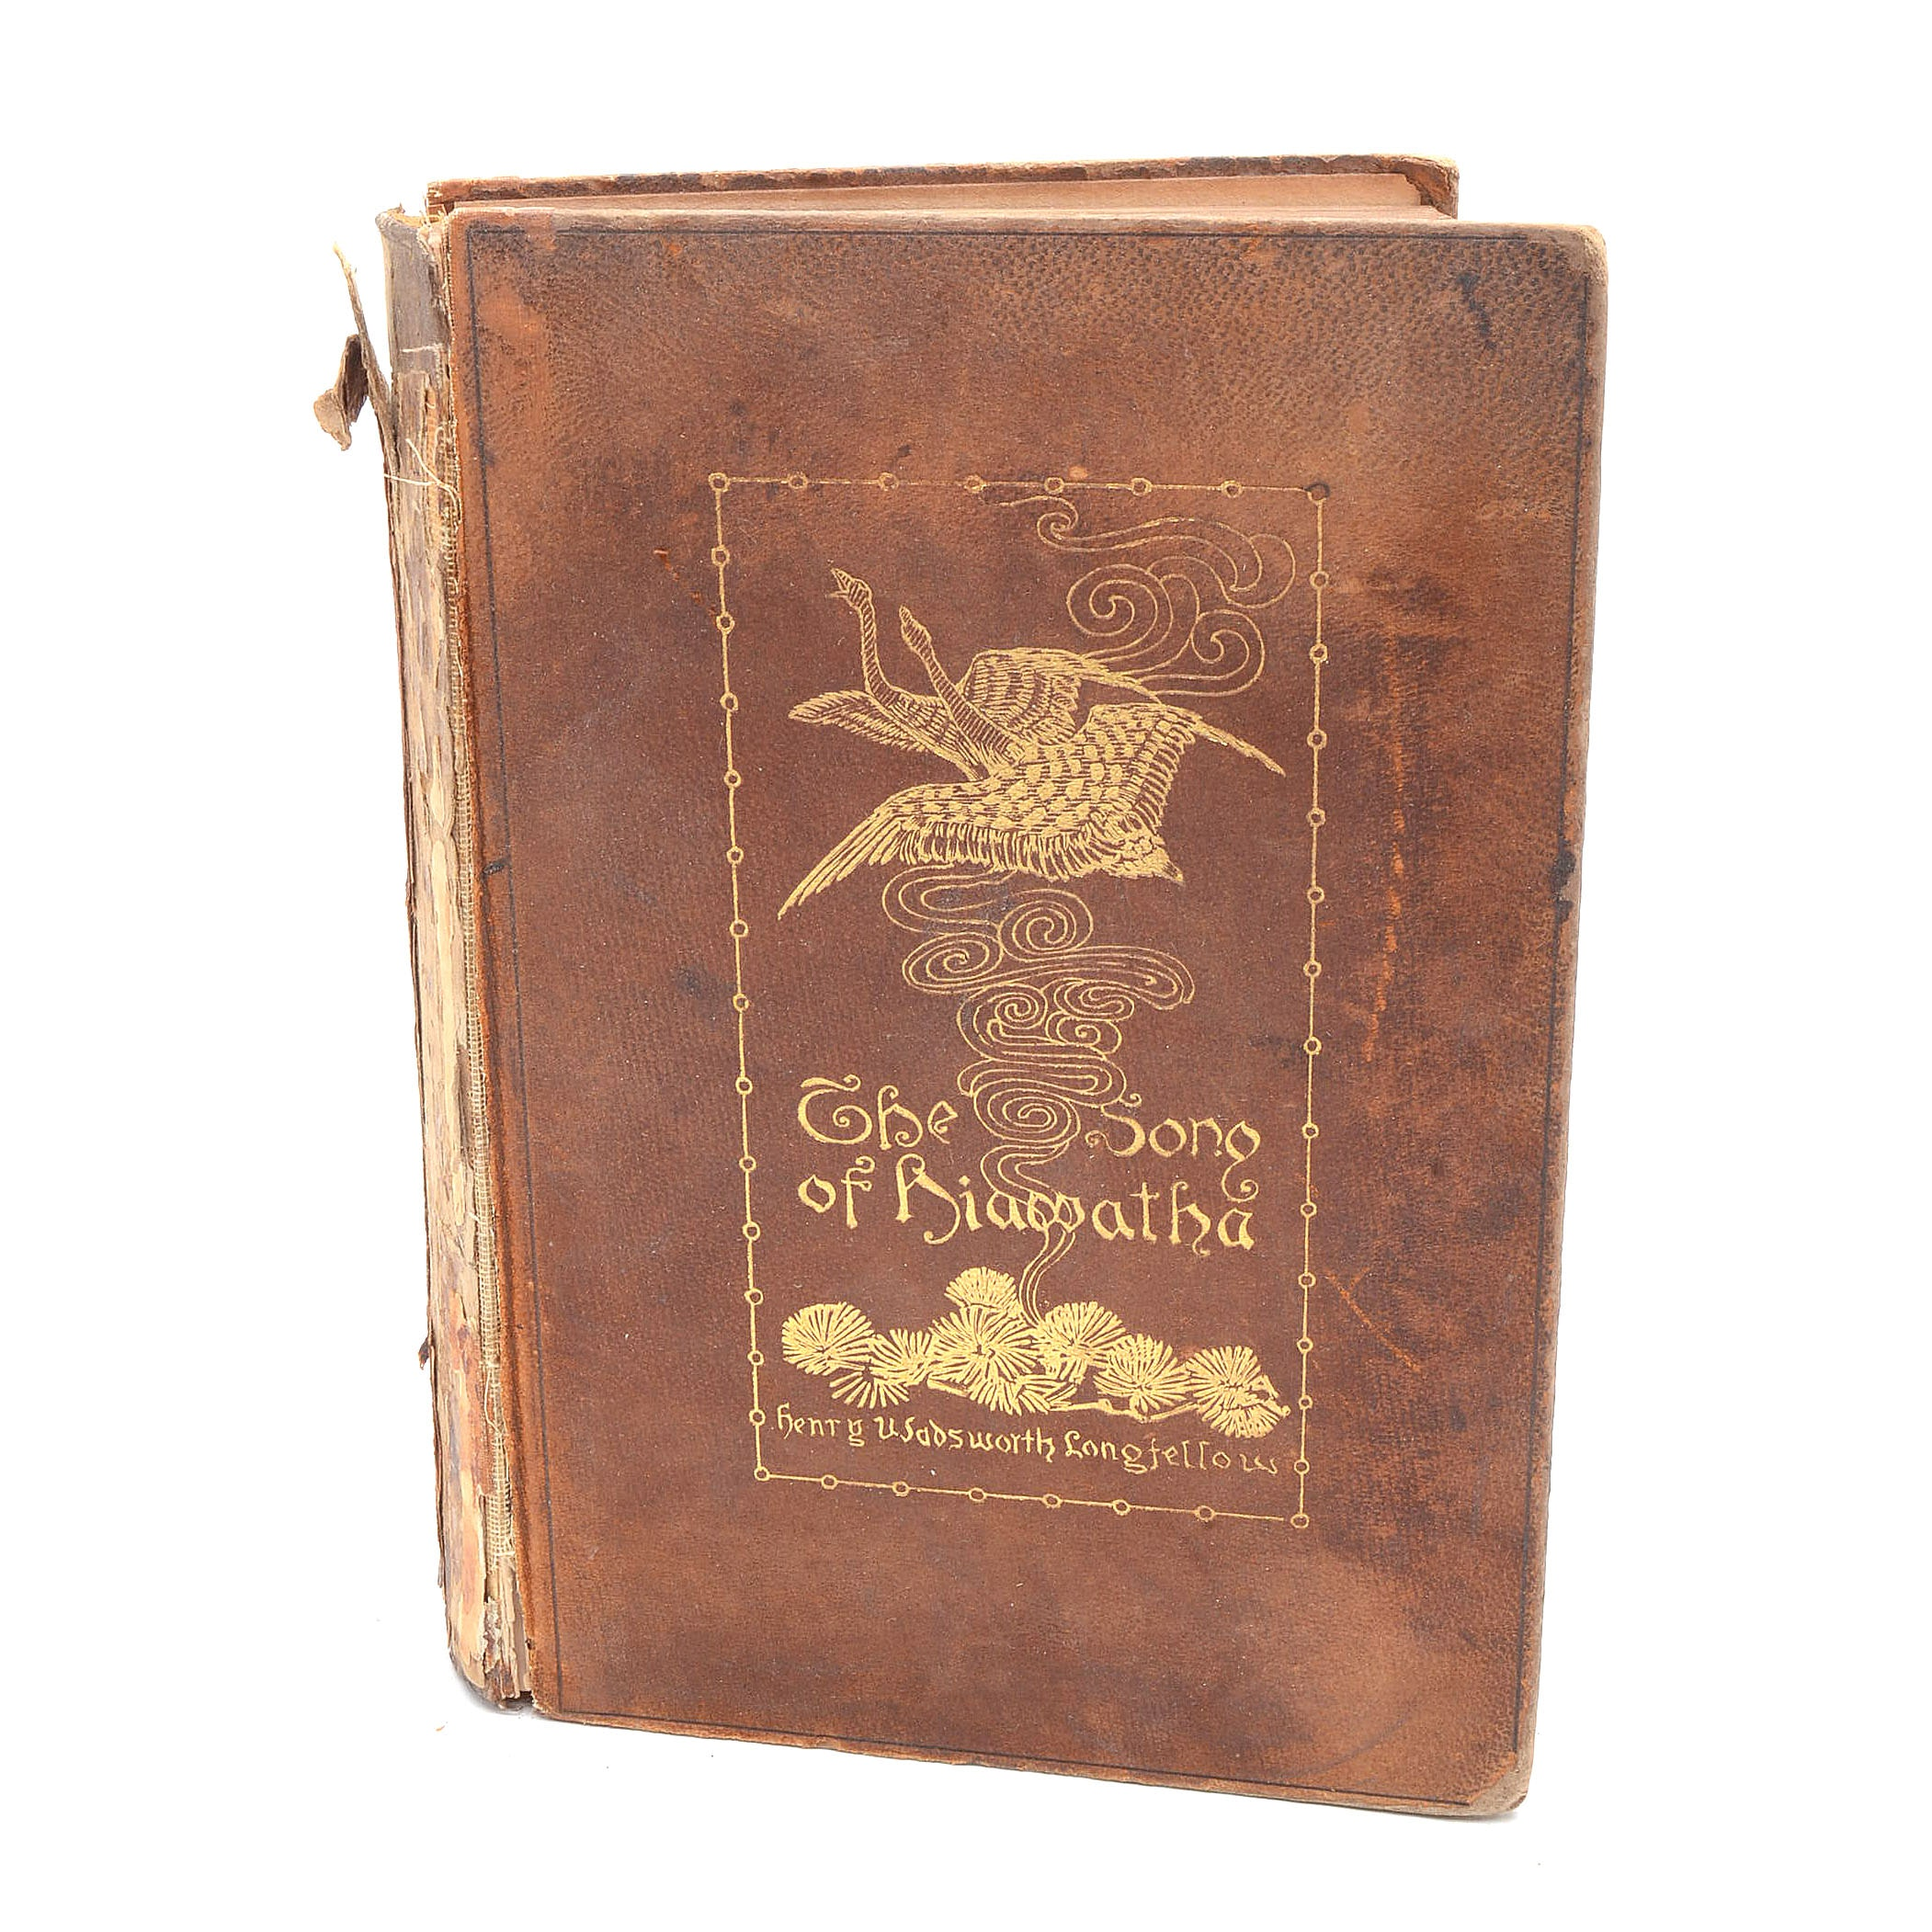 "1890 First Remington Illustrated Edition of ""The Song of Hiawatha"" by Longfellow"